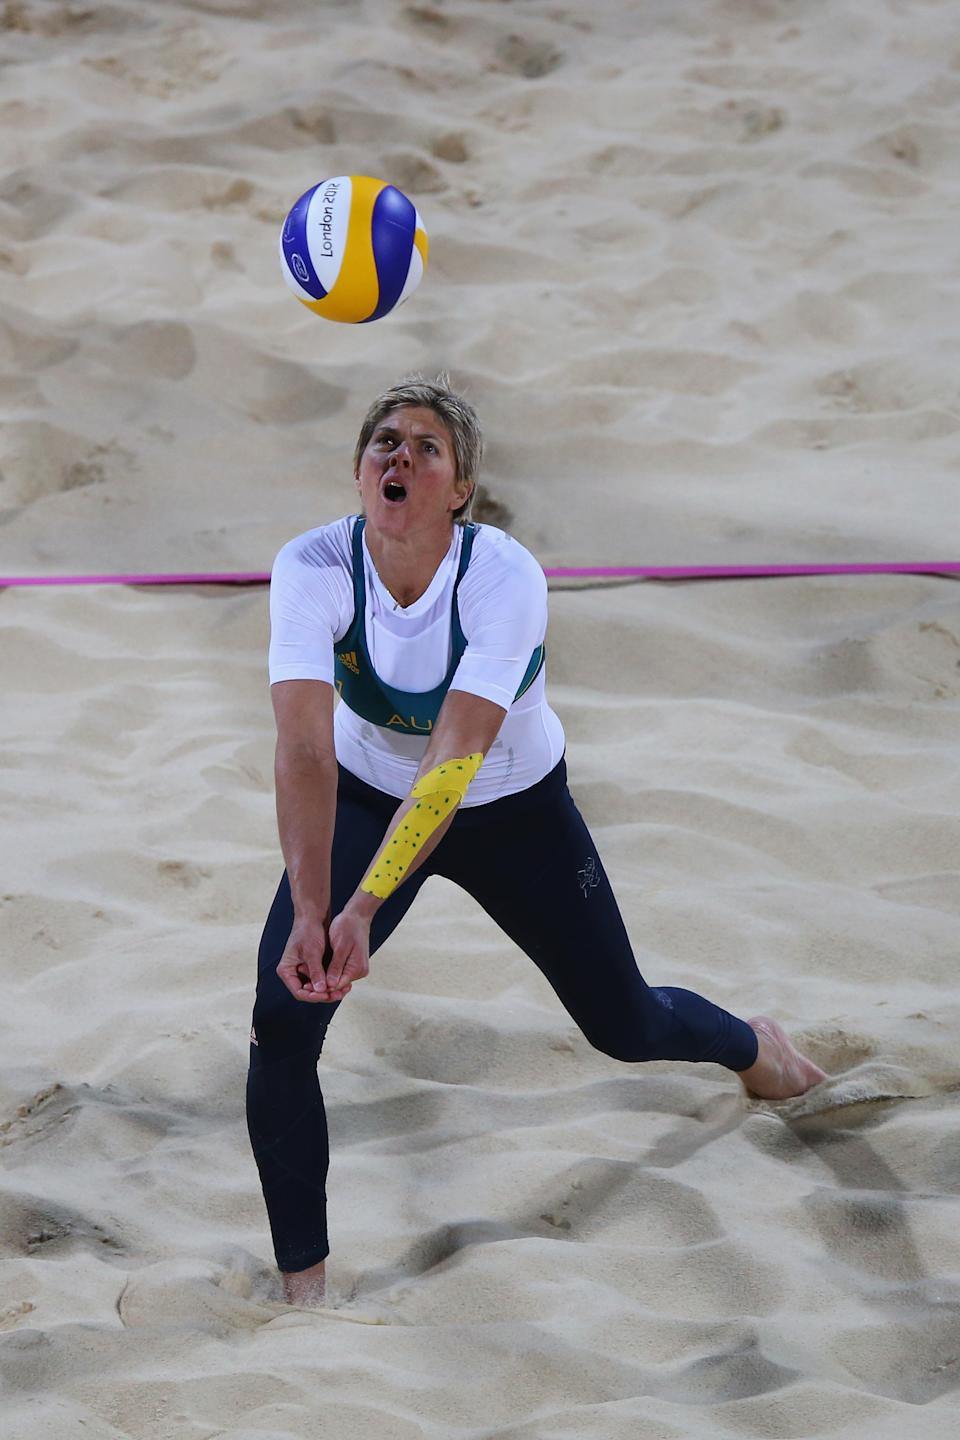 LONDON, ENGLAND - JULY 28: Nat Cook of Australia dives for the ball against the United States during the Women's Beach Volleyball Preliminary Round on Day 1 of the London 2012 Olympic Games at Horse Guards Parade on July 28, 2012 in London, England. (Photo by Ryan Pierse/Getty Images)